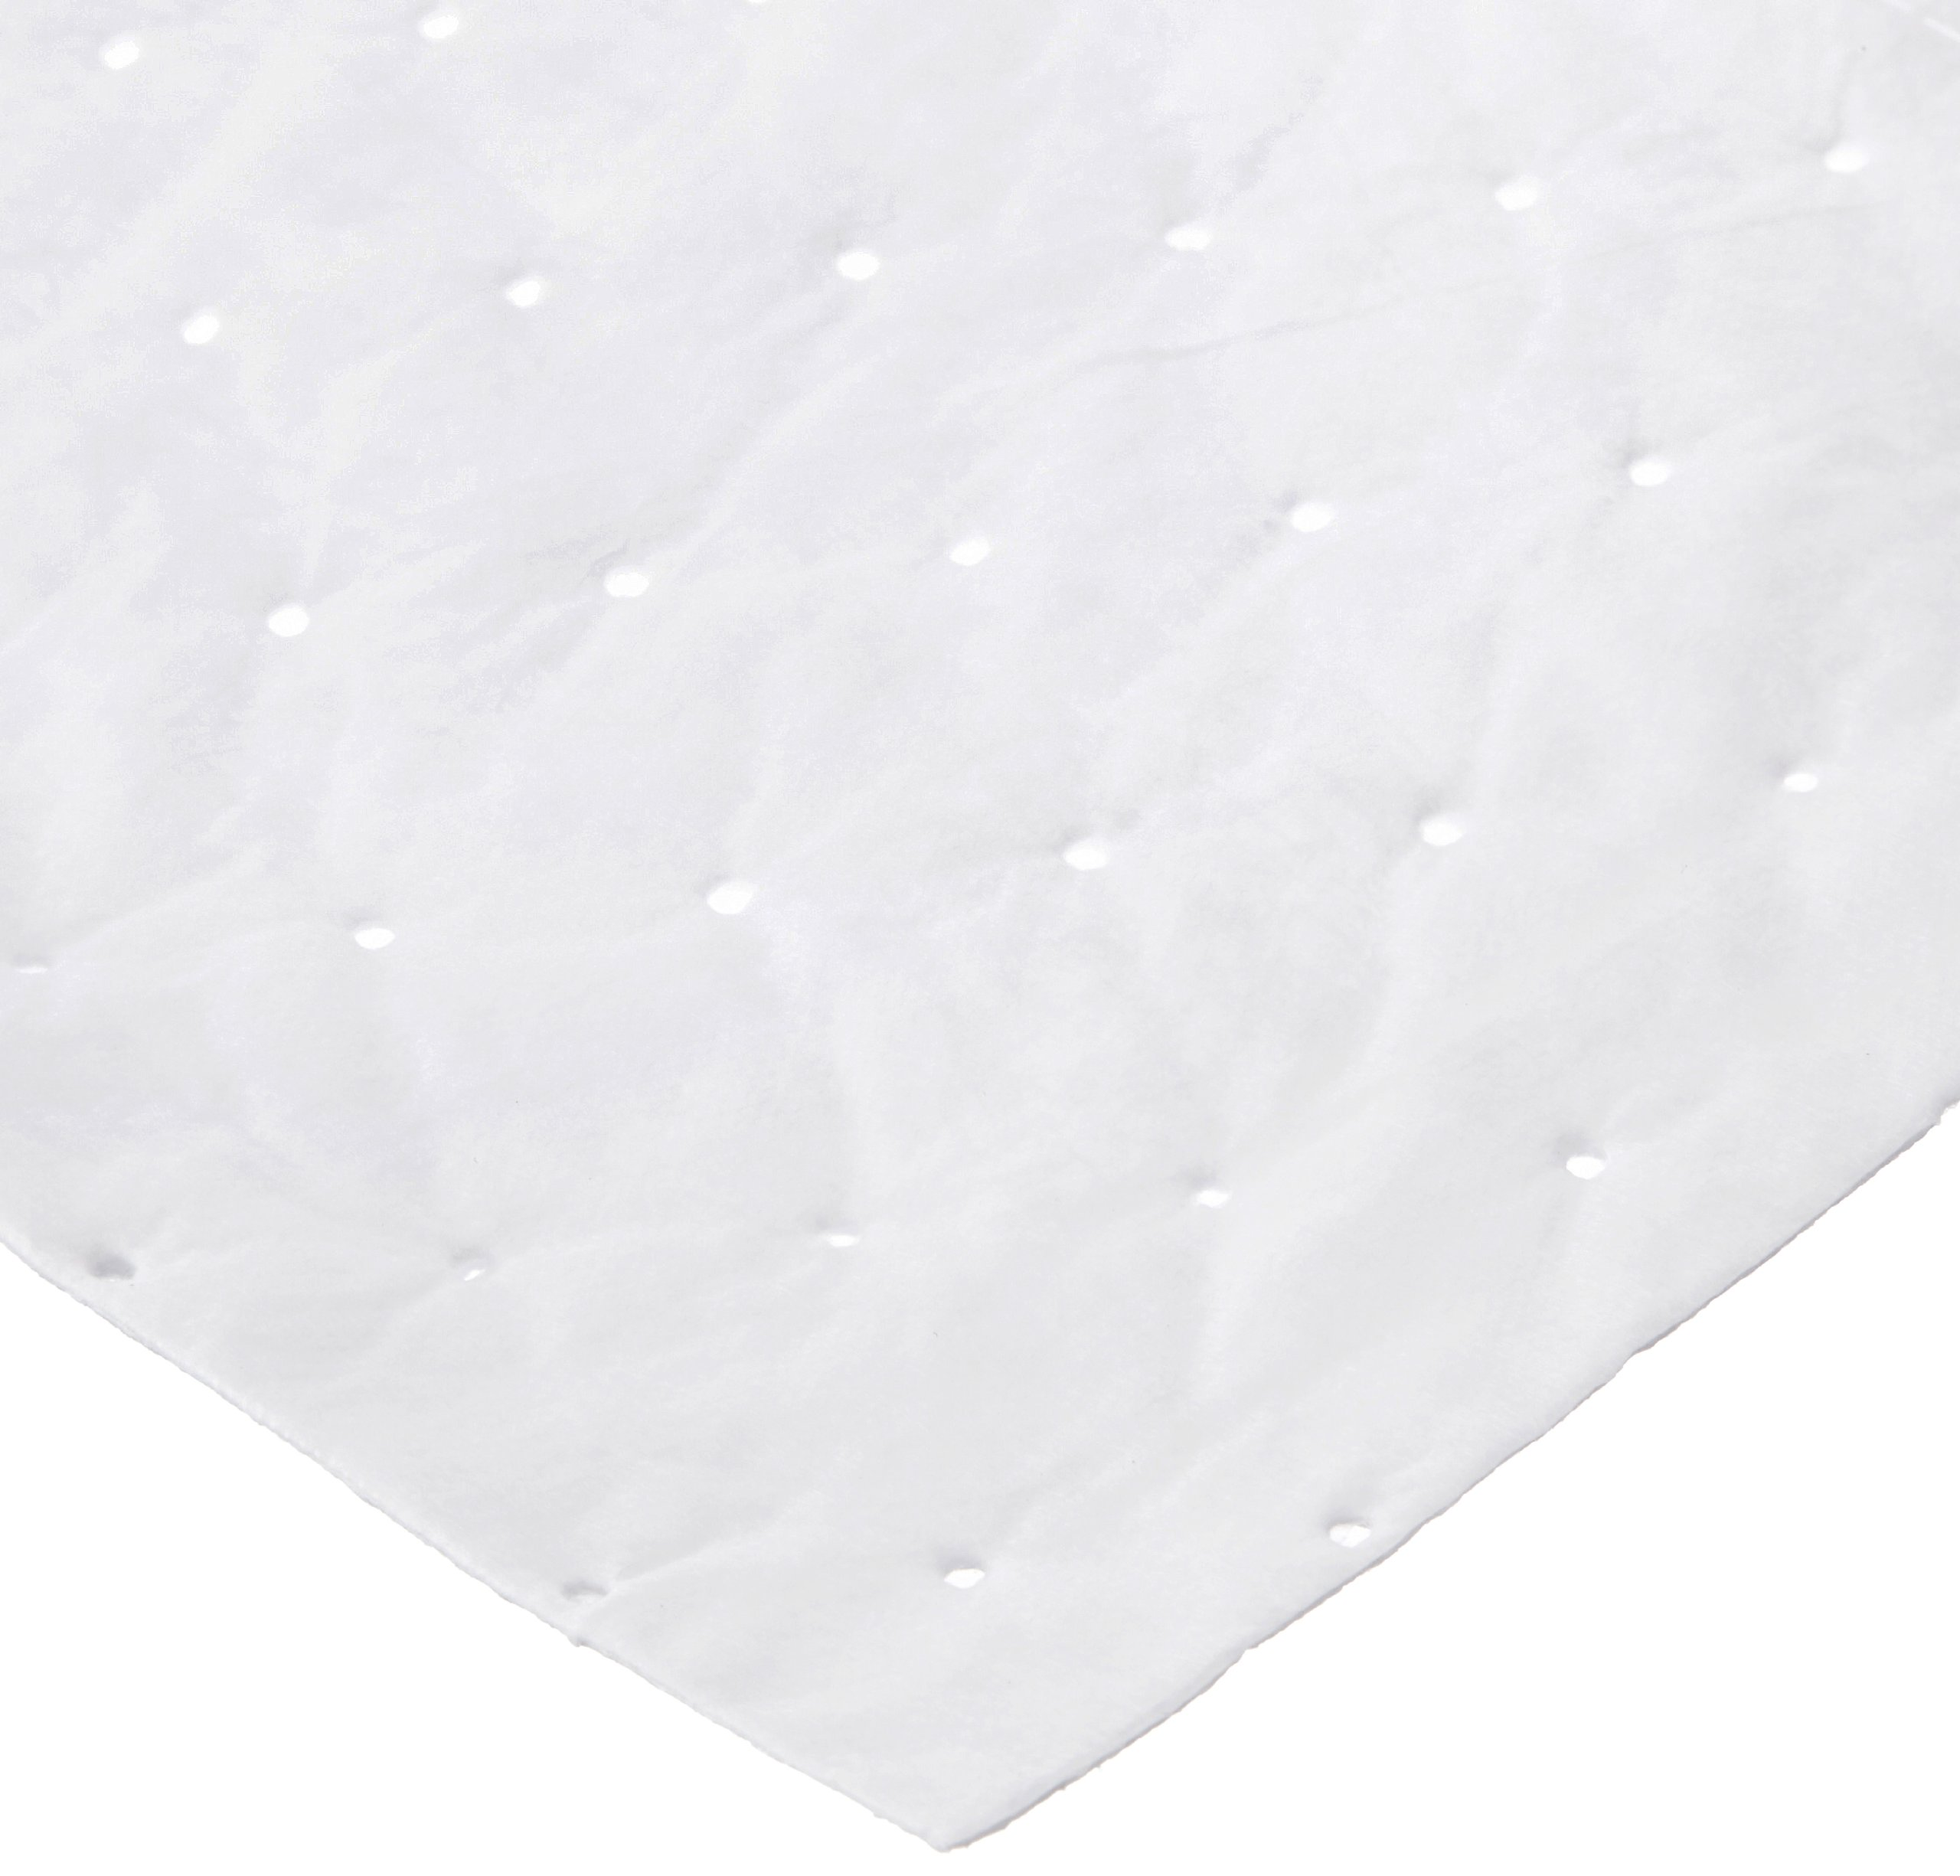 SpillTech WPB100S Polypropylene Oil-Only SonicBonded Singleweight Mat Pad, 19'' Length x 15'' Width, White (Pack of 100)